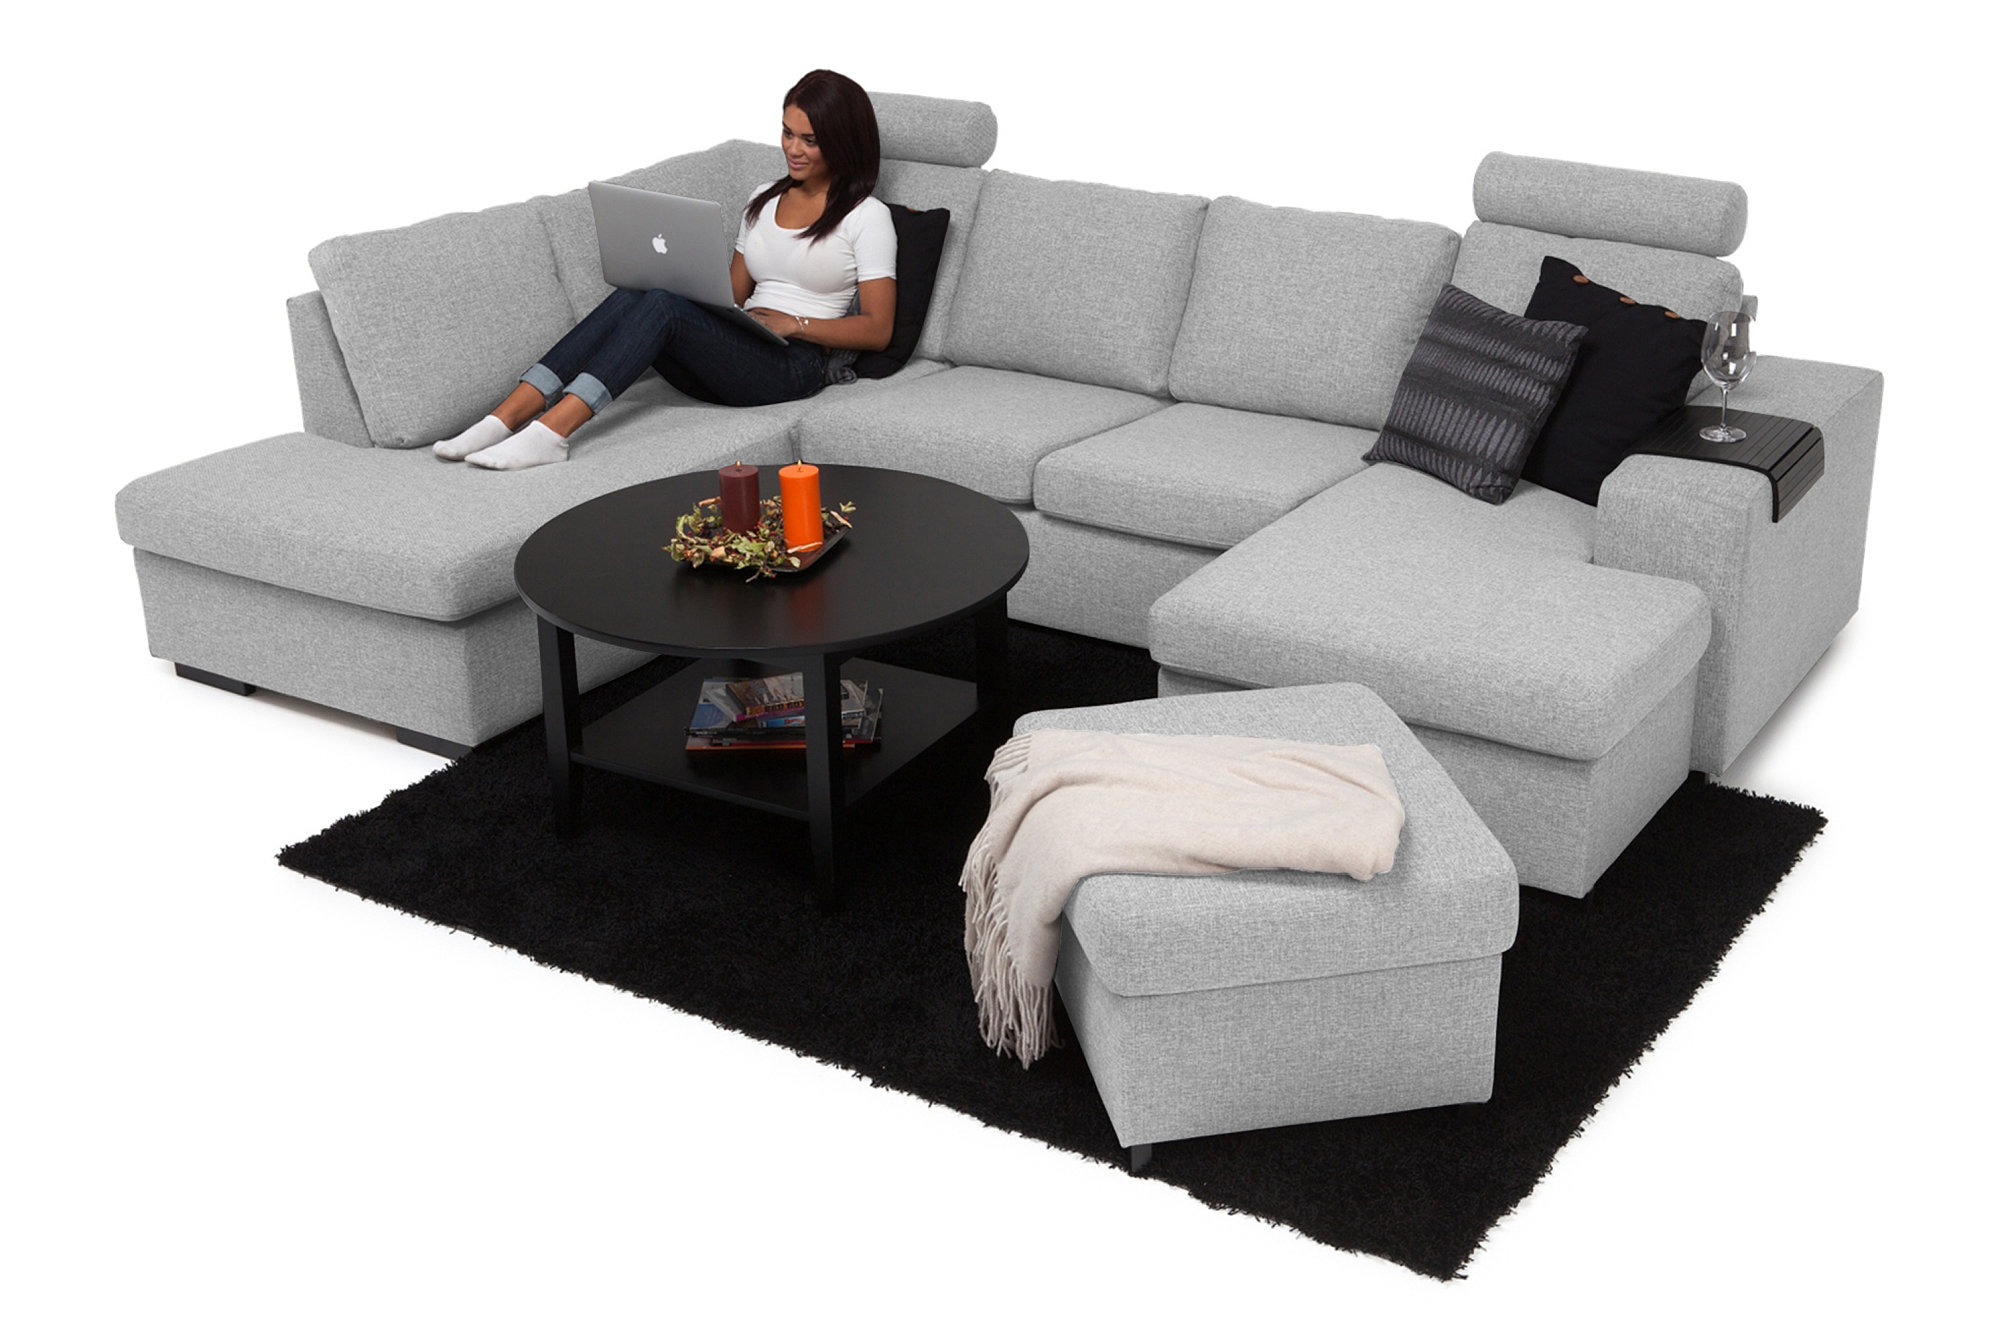 U Sofa Best U Shaped Couch Reviews 2018 Bring Family And Friends Closer